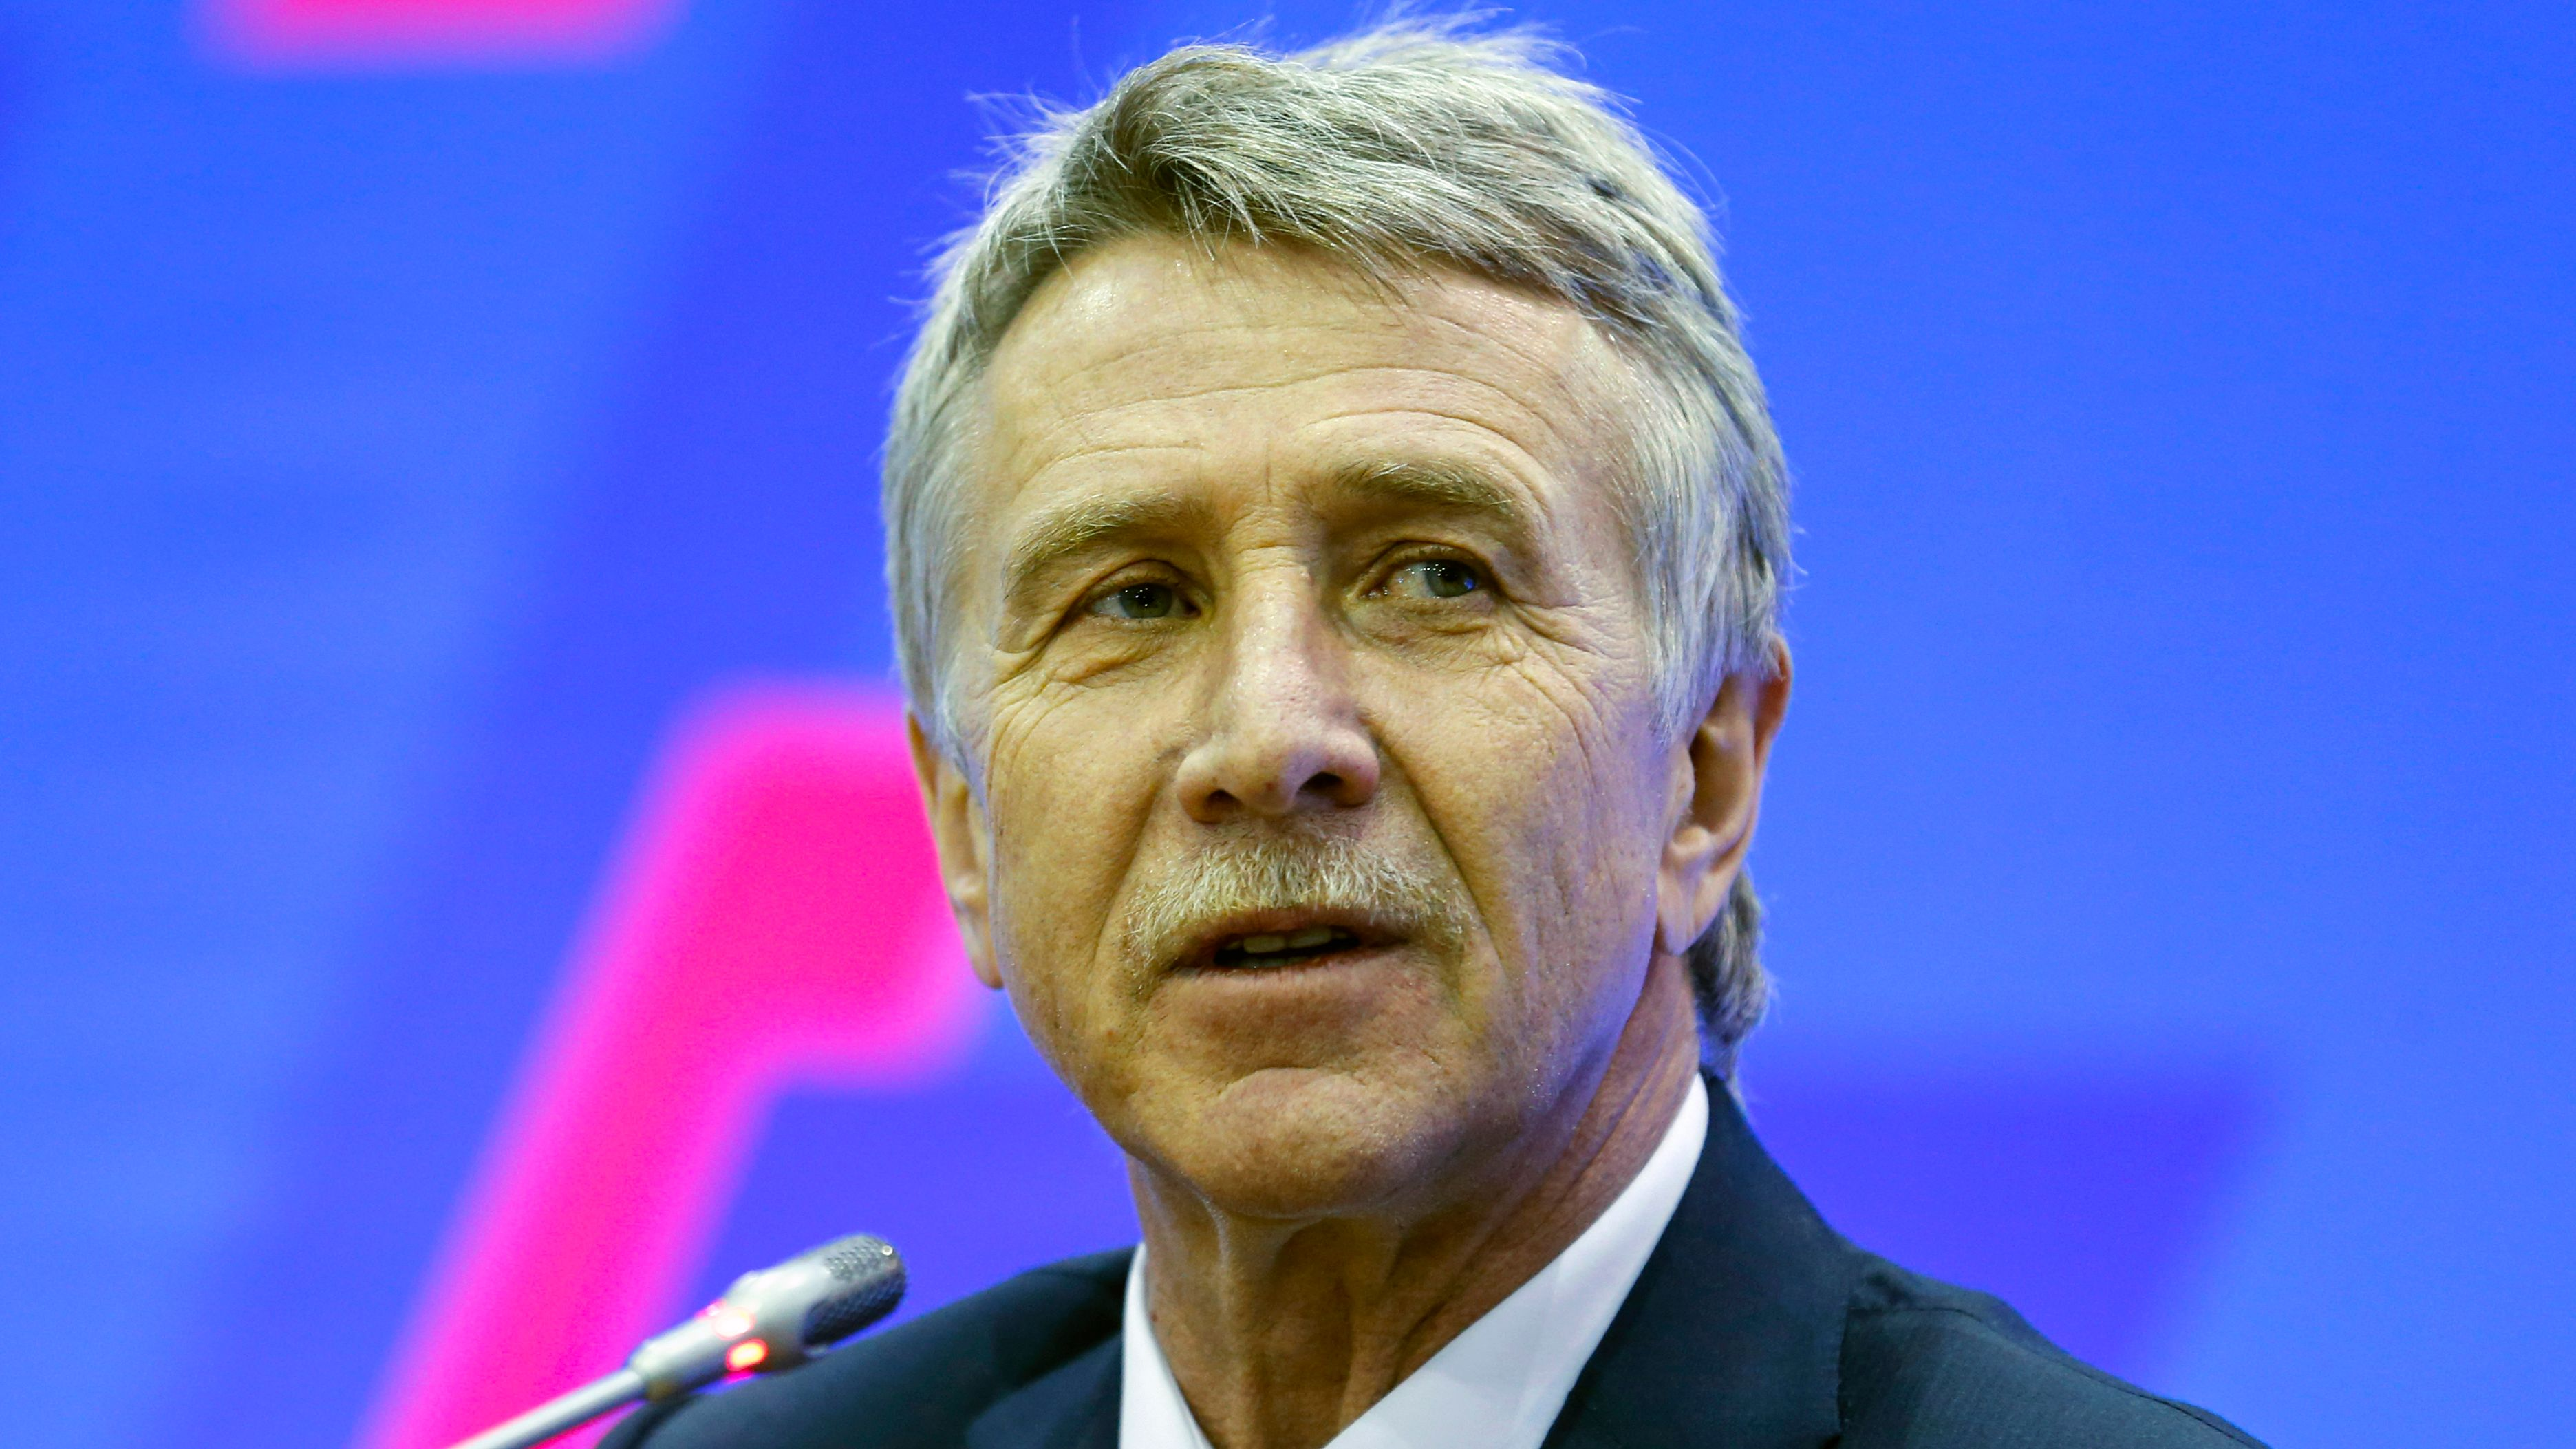 Leonid Mikhelson, Russia's 3rd richest person, seen here in 2017. (Maxim Zmeyev/AFP/Getty Images)